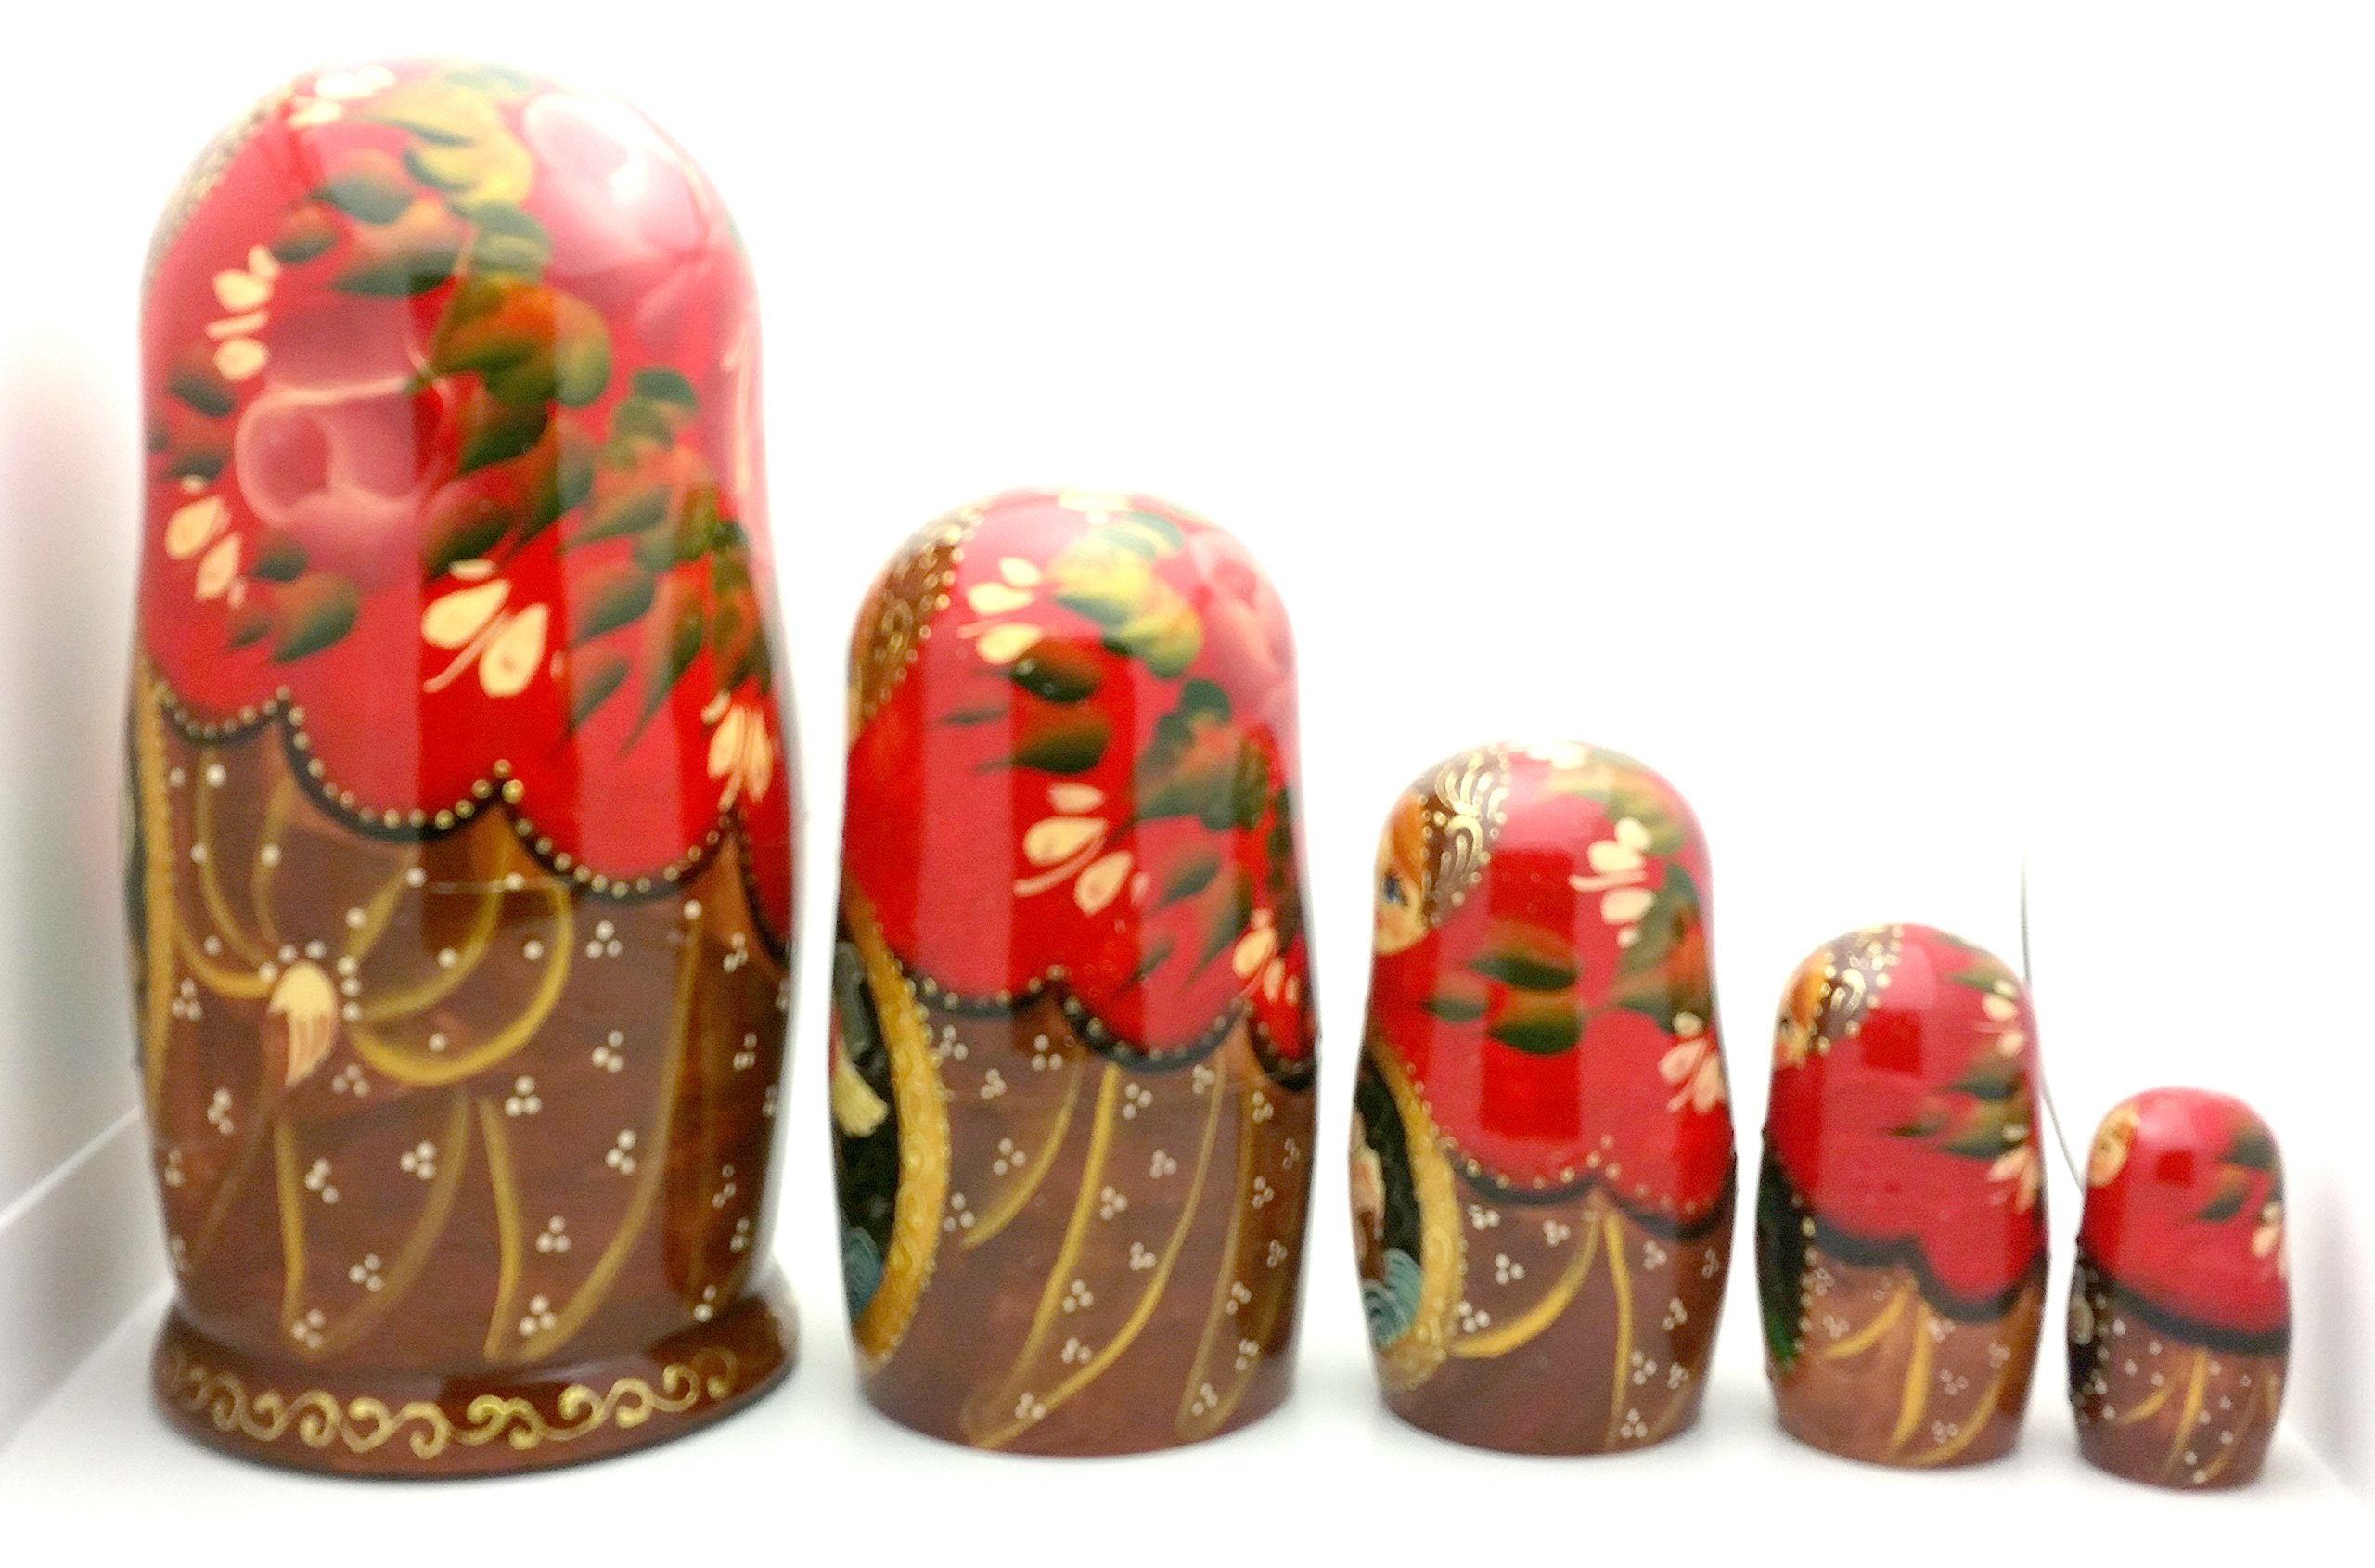 Tsar Saltan fairy tale by Pushkin Russian Nesting doll Hand Carved Hand Painted 5 piece Set 7'' tall by BuyRussianGifts (Image #4)